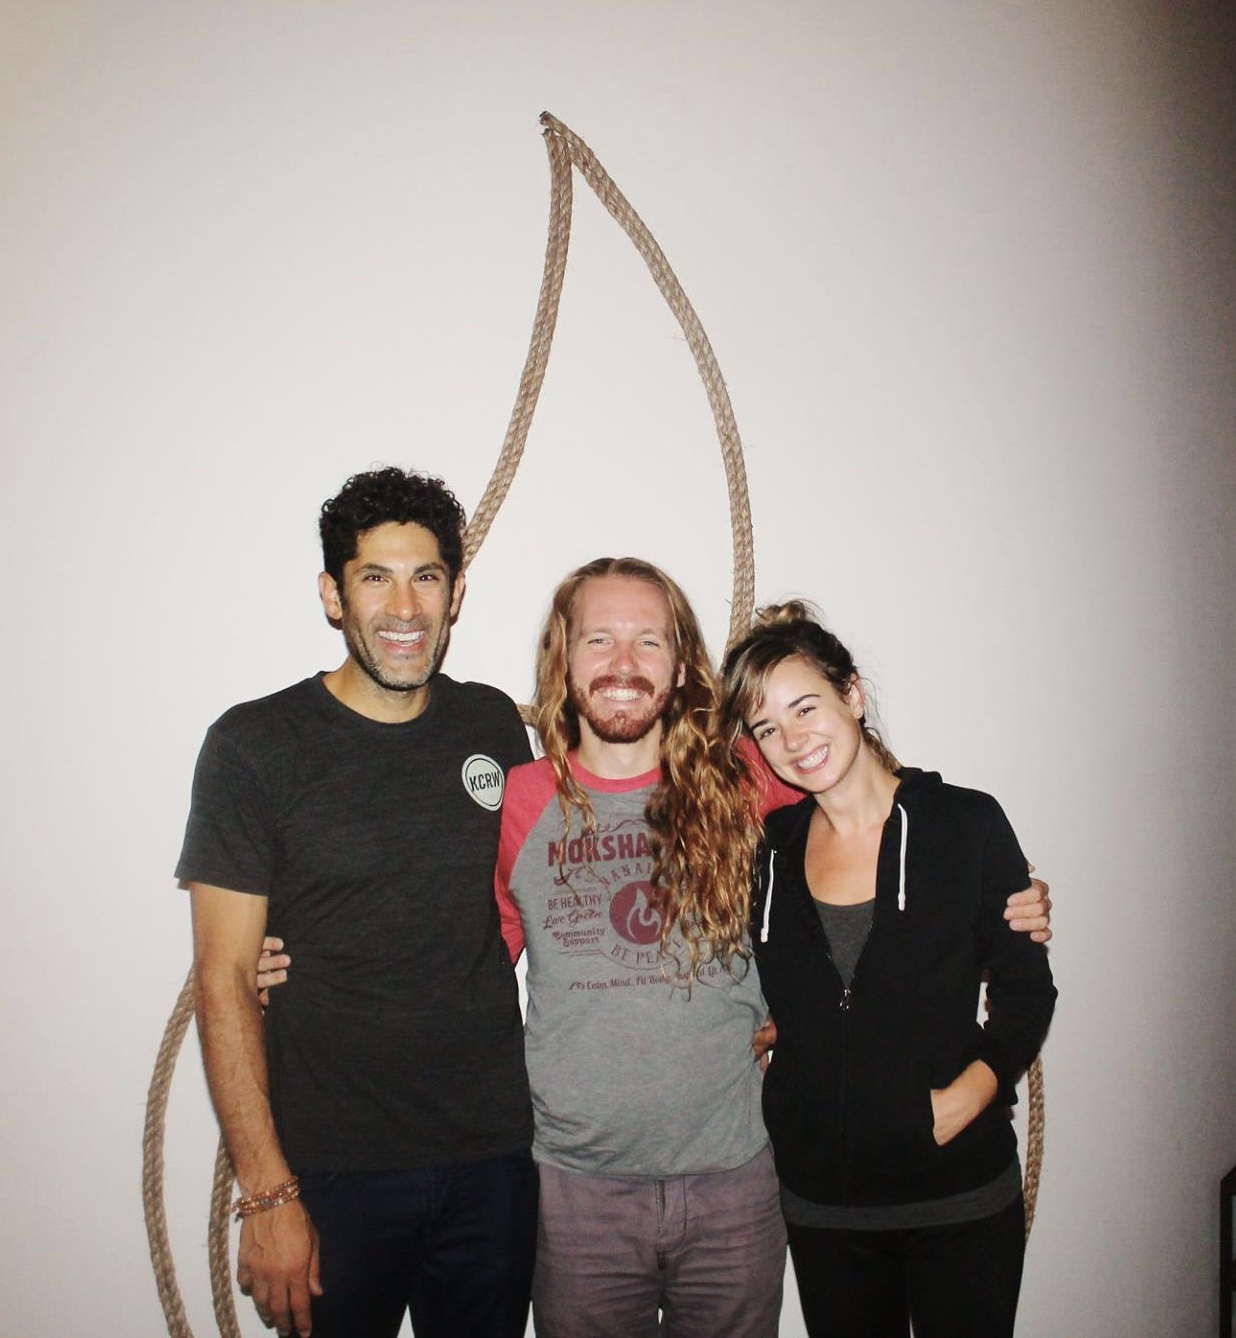 Me, Robi and Malika reunited at Modo Yoga LA